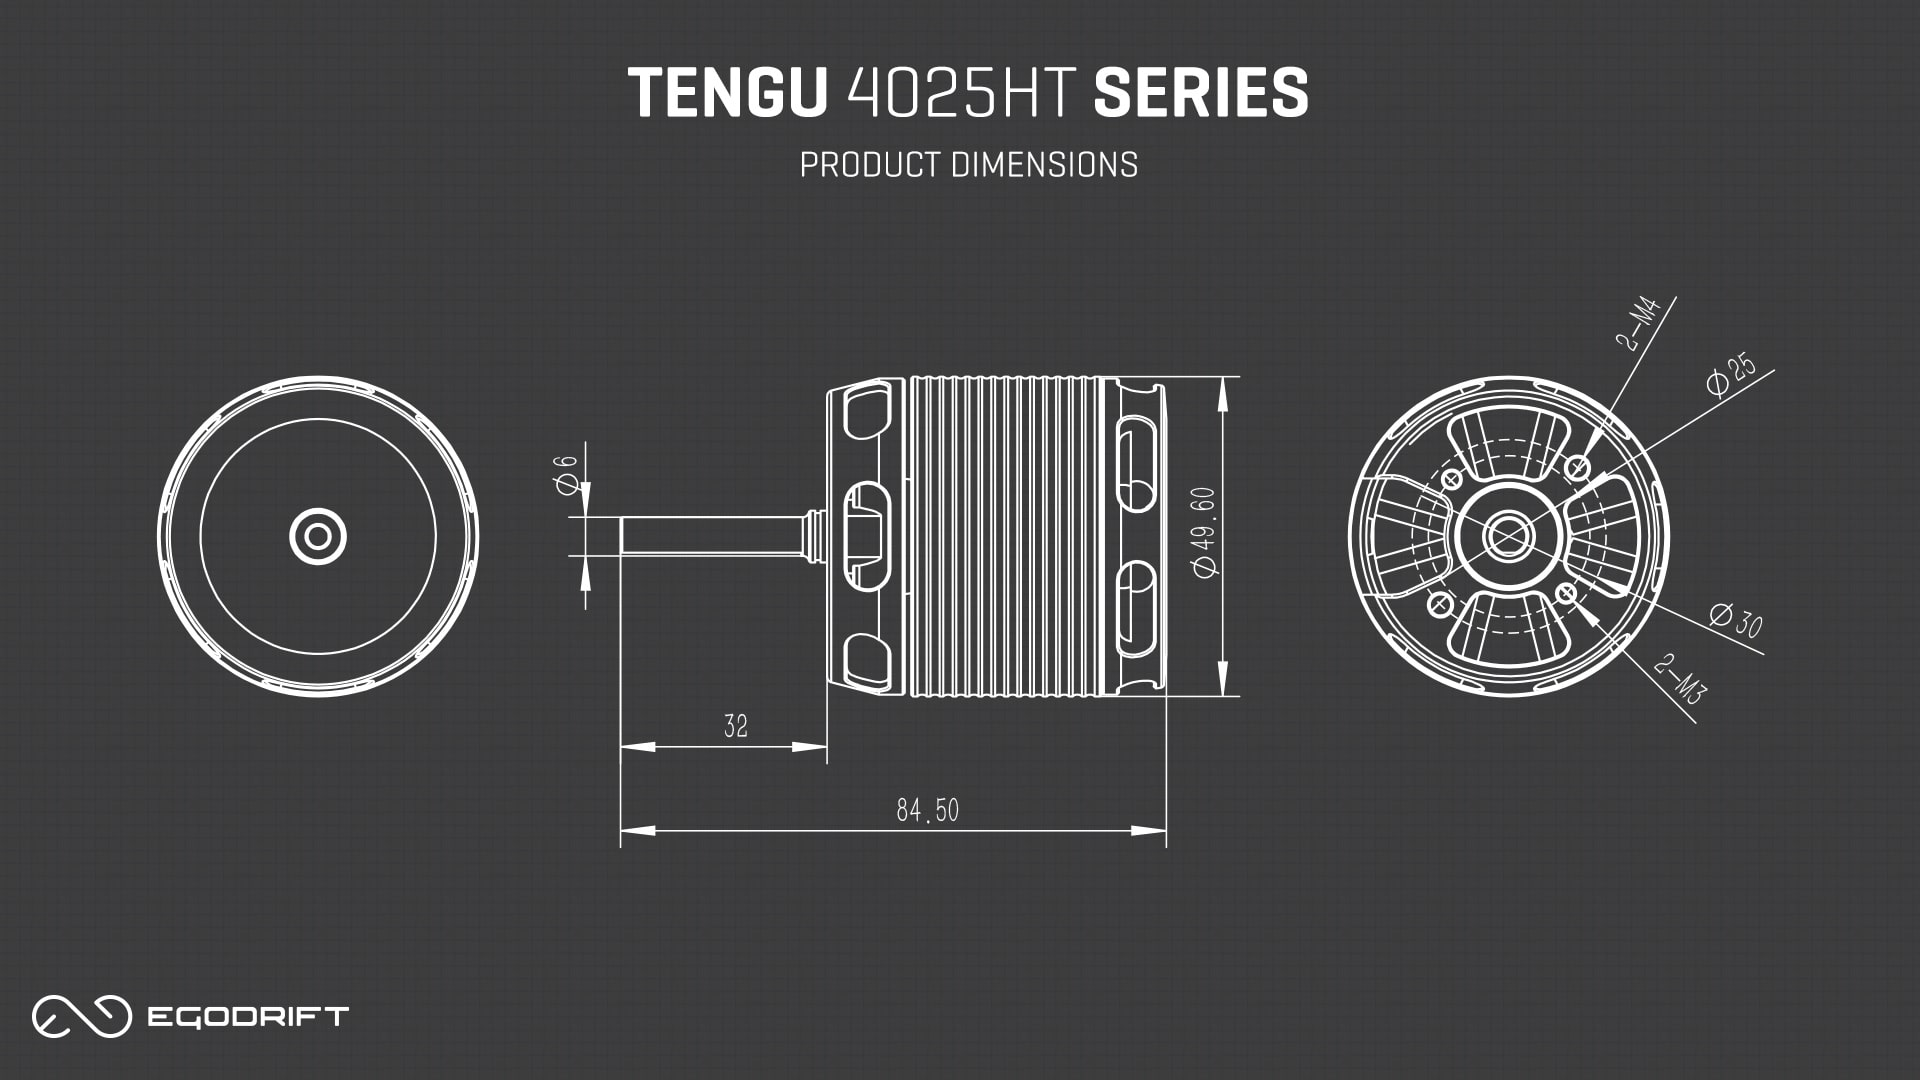 EGODRIFT Tengu 4025HT Series Product Dimensions